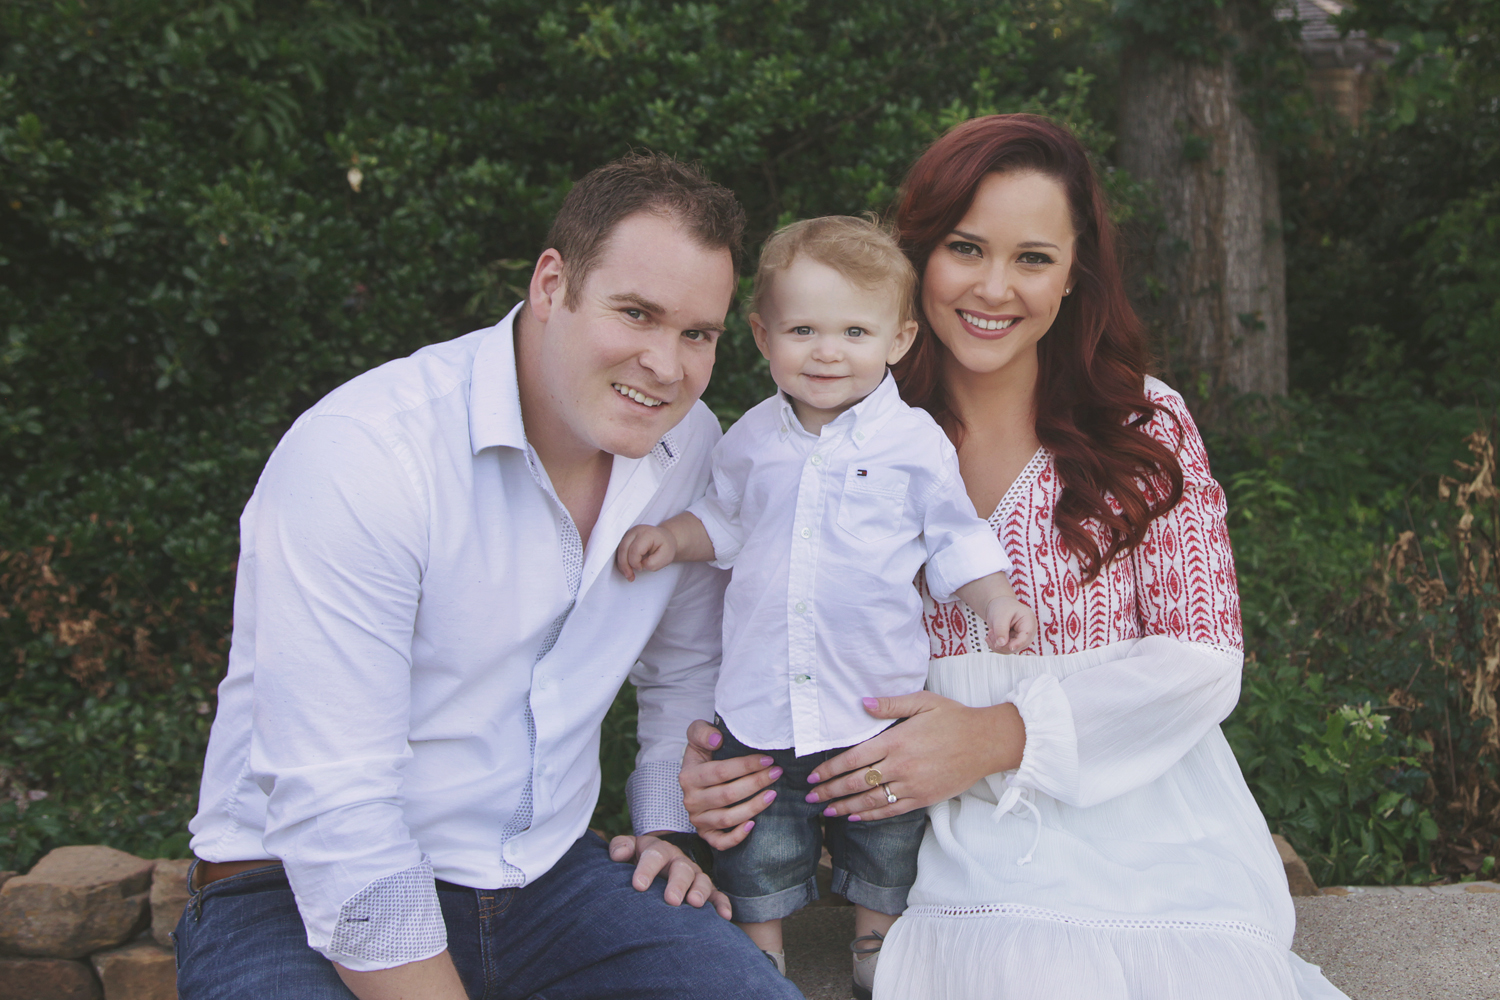 Ft. Worth Child Photographer one year family